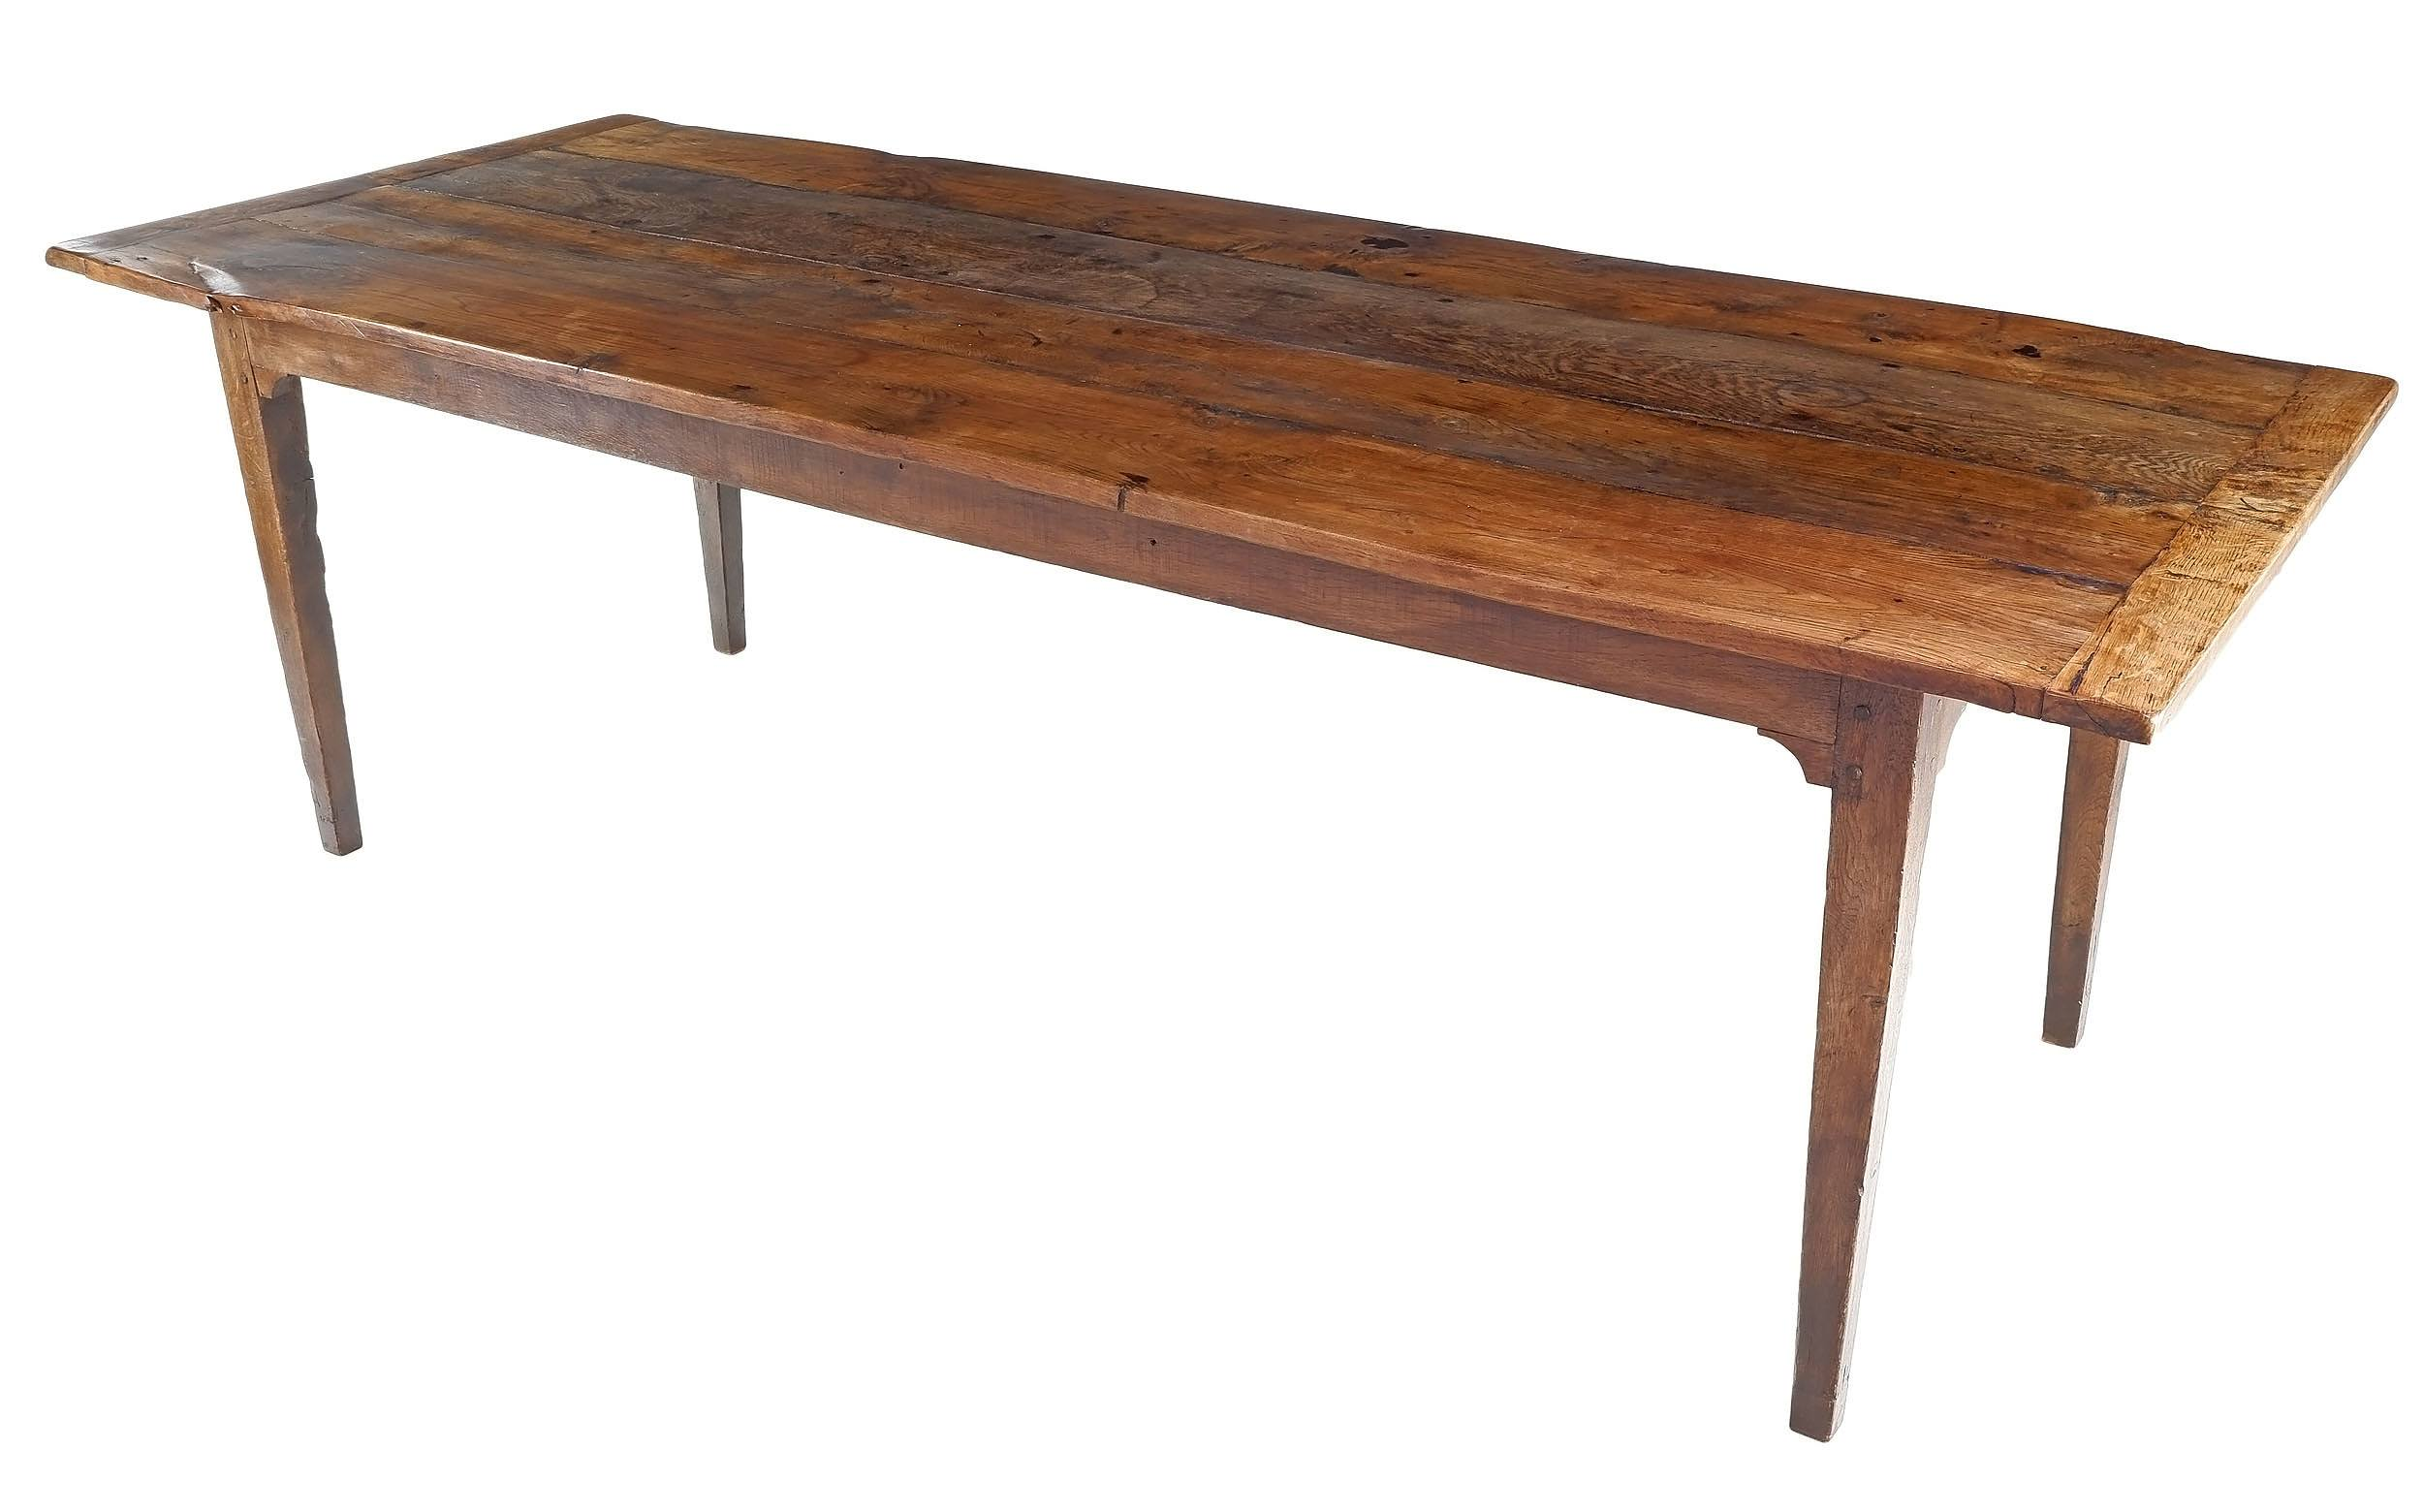 'Superb Antique French Oak Farmhouse Dining Table with Breadboard Ends of Good Proportions - Circa 1740'